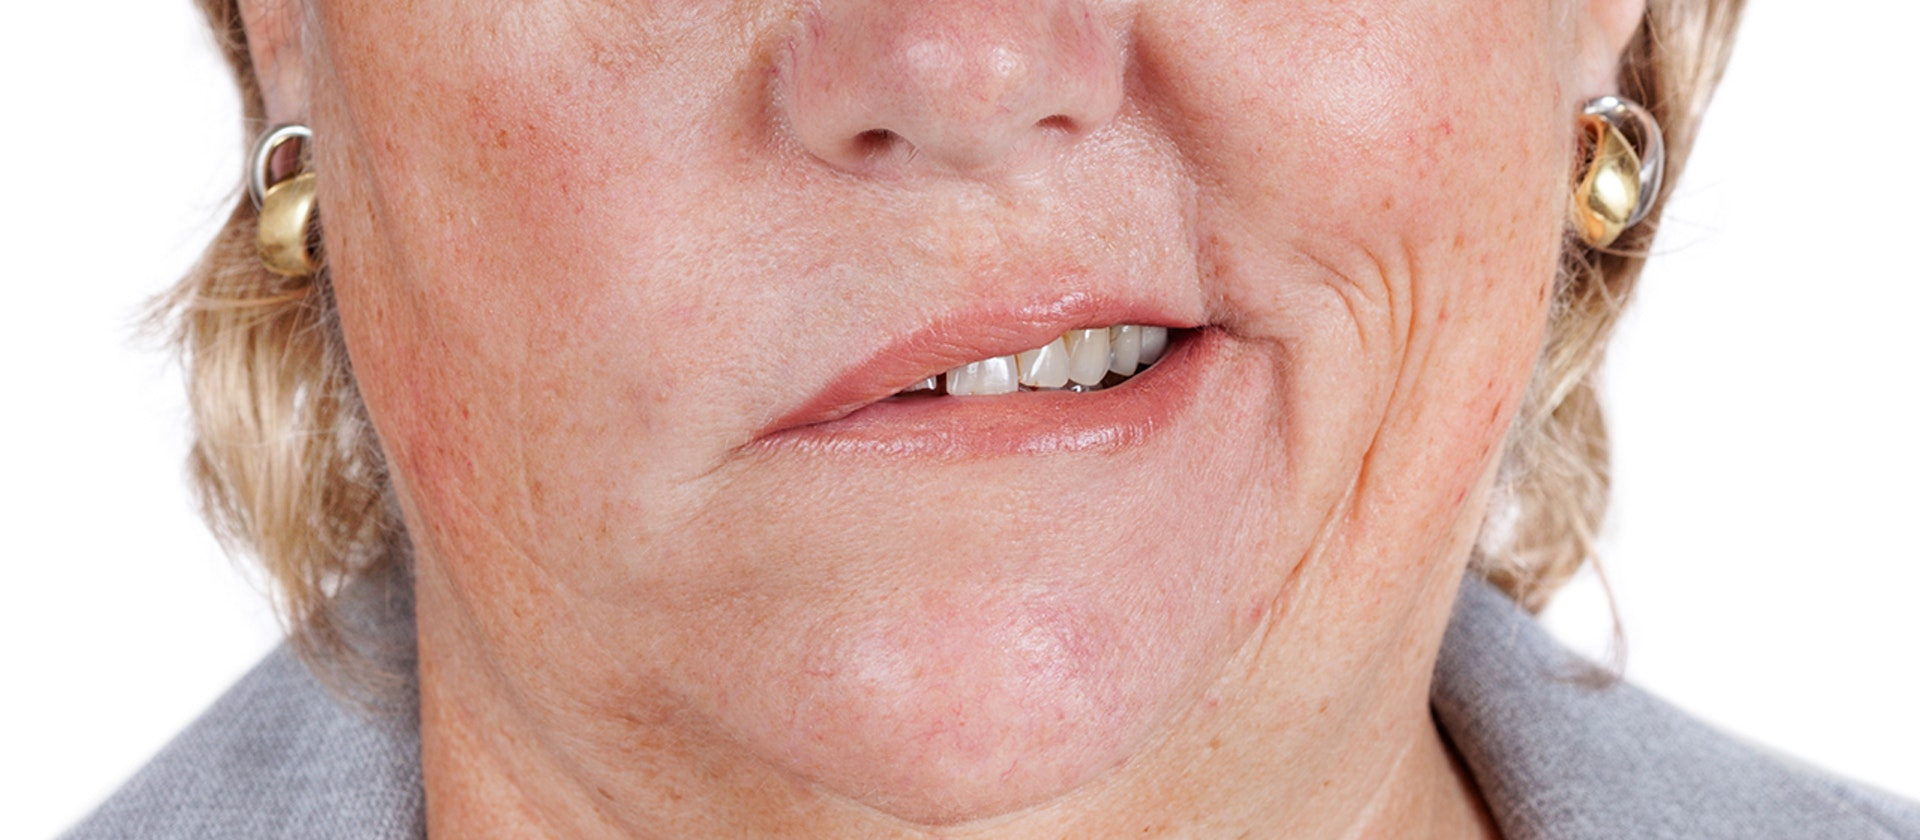 asymmetrical smile symptoms causes common questions buoy